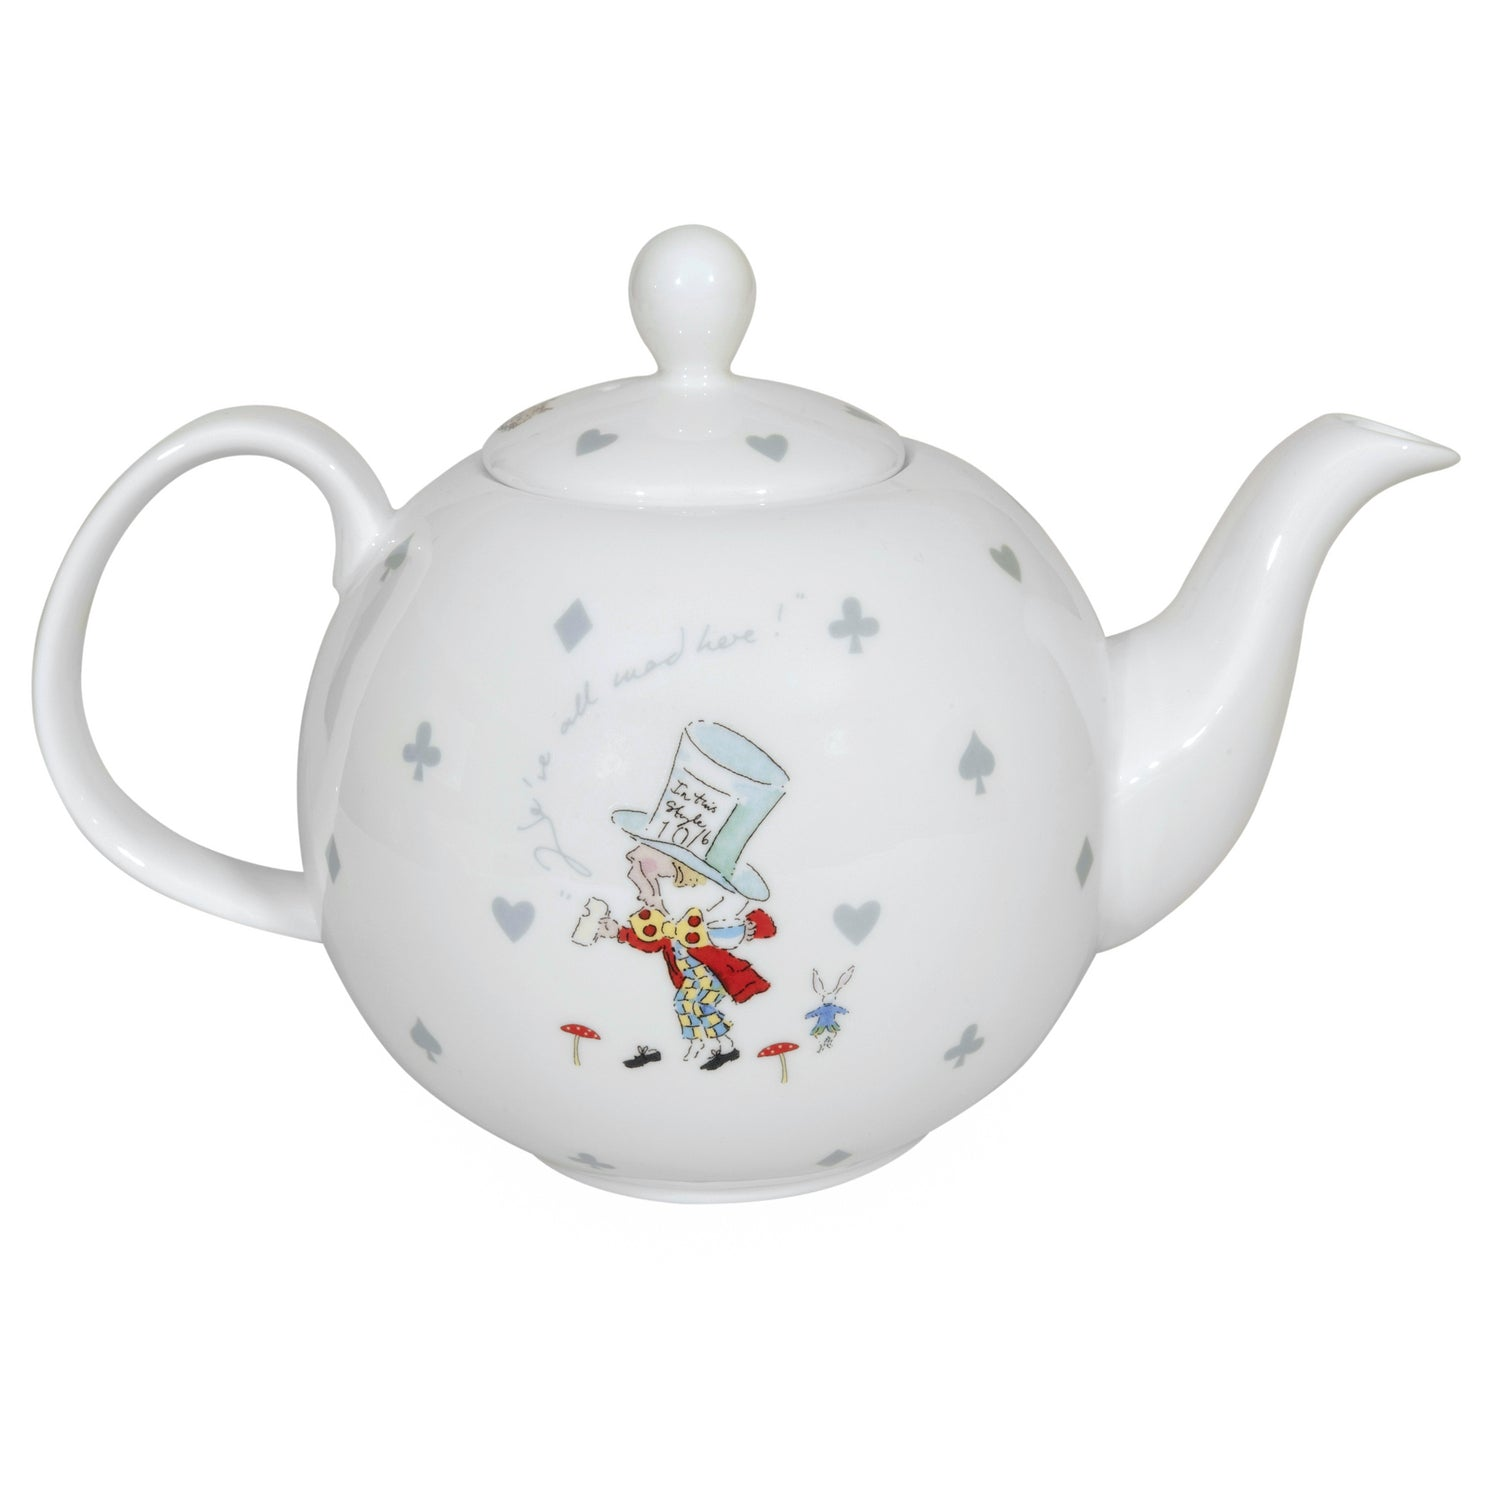 Alice in Wonderland Teapot